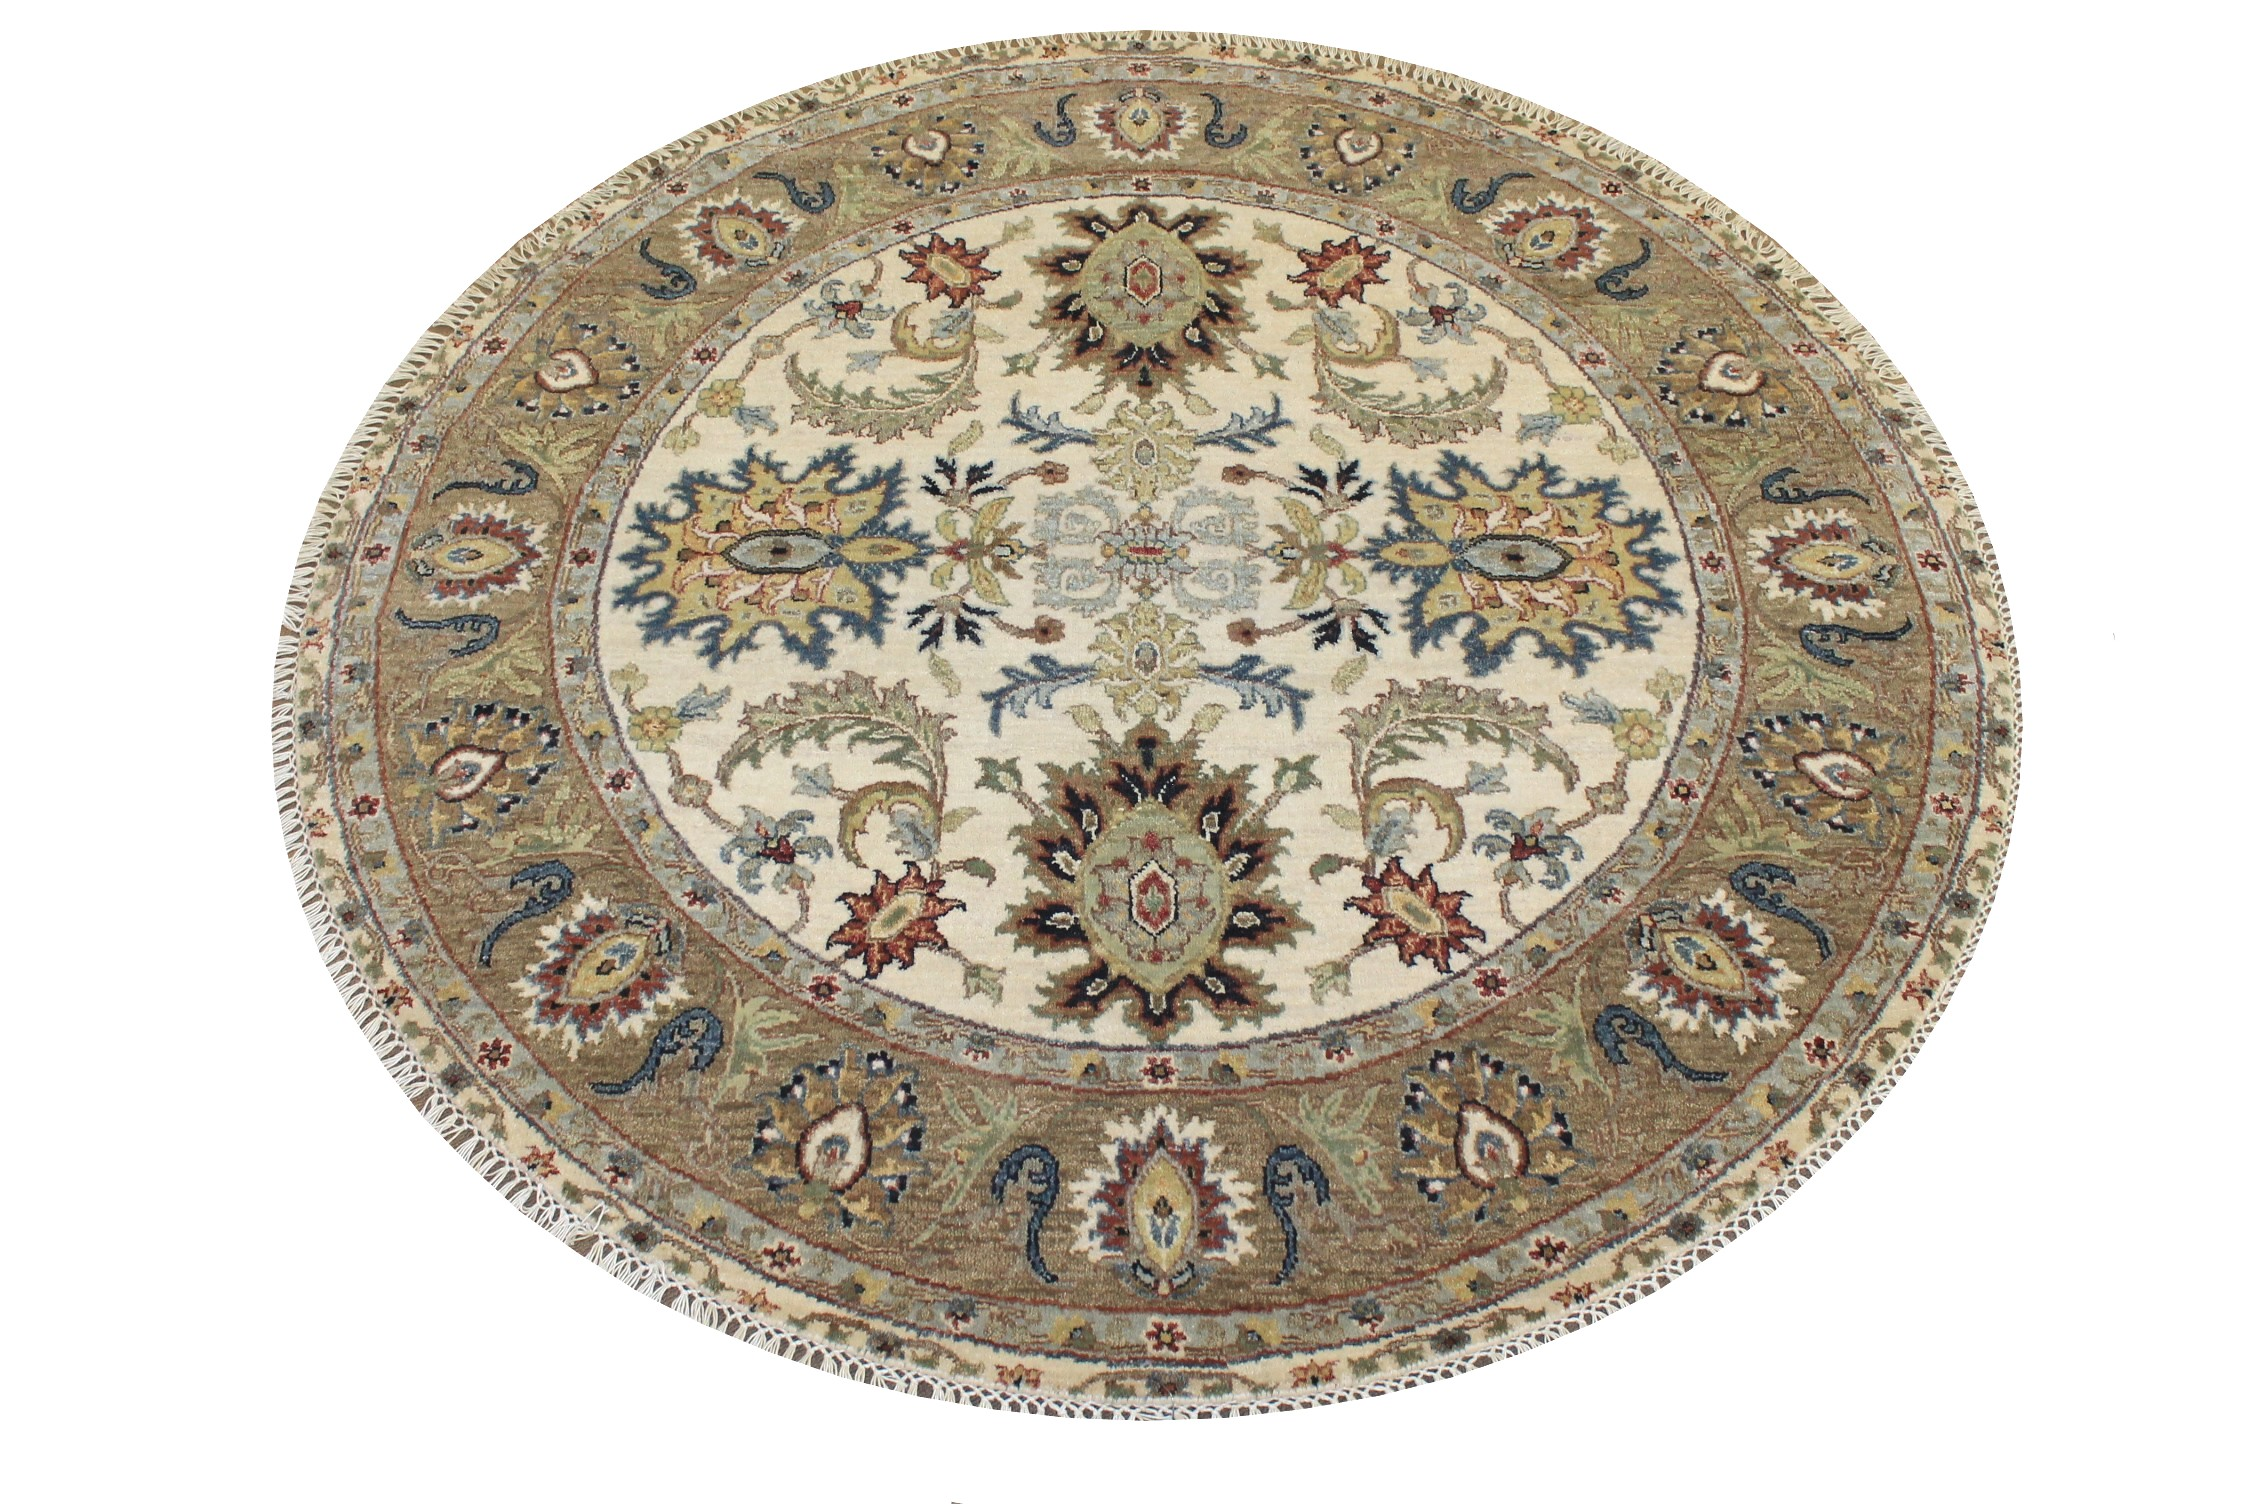 5 ft. Round & Square Traditional Hand Knotted Wool Area Rug - MR024827